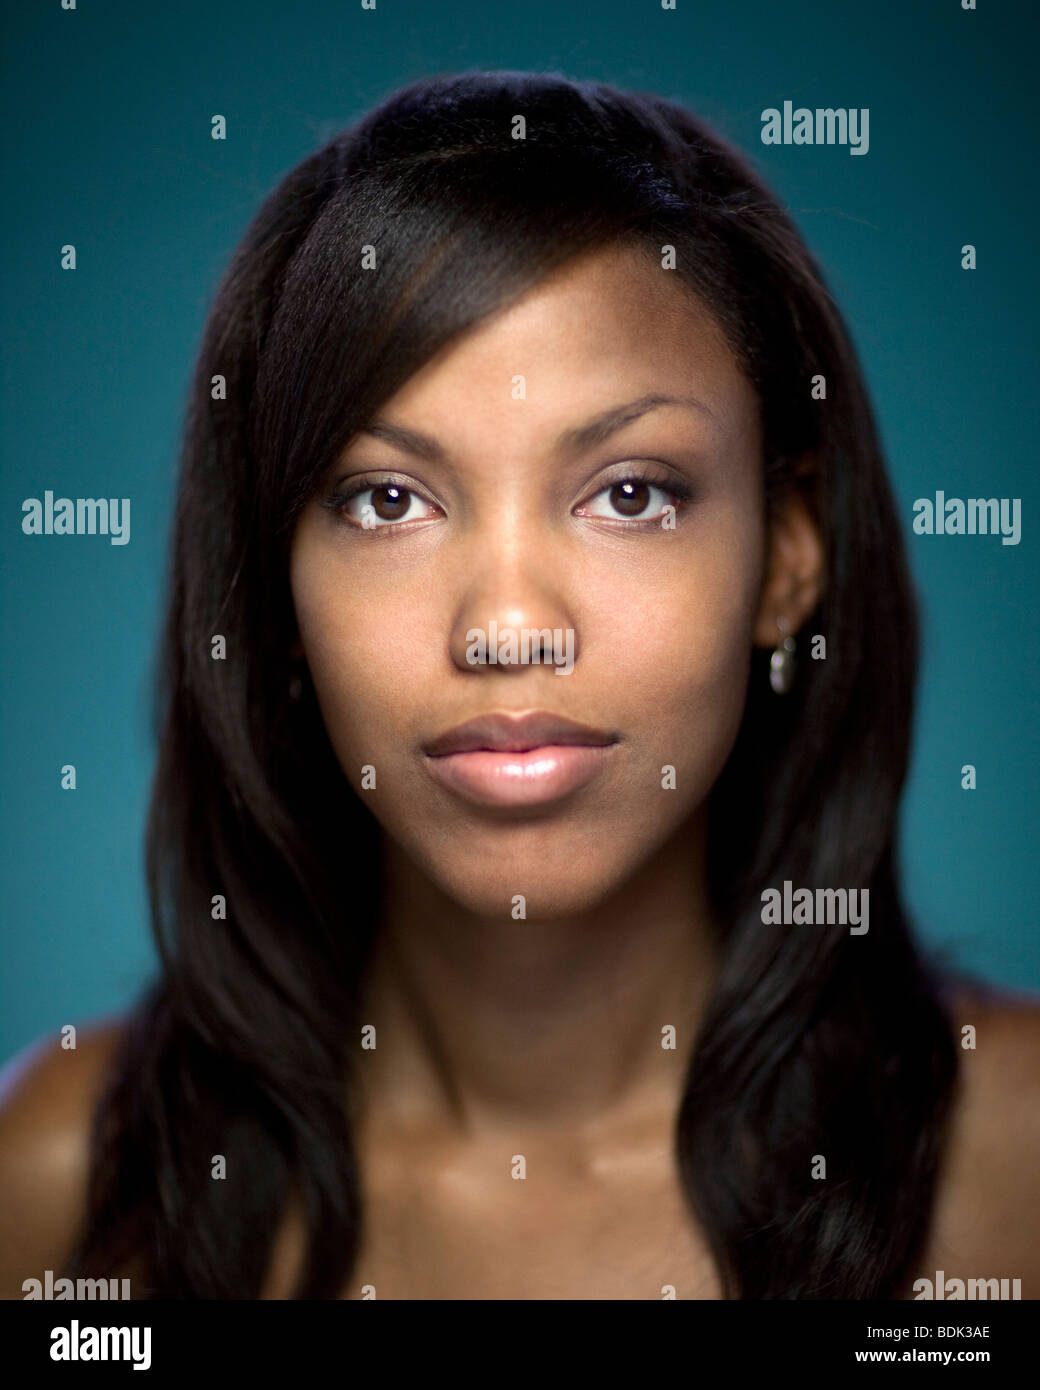 Close up portrait of African woman on blue background. - Stock Image